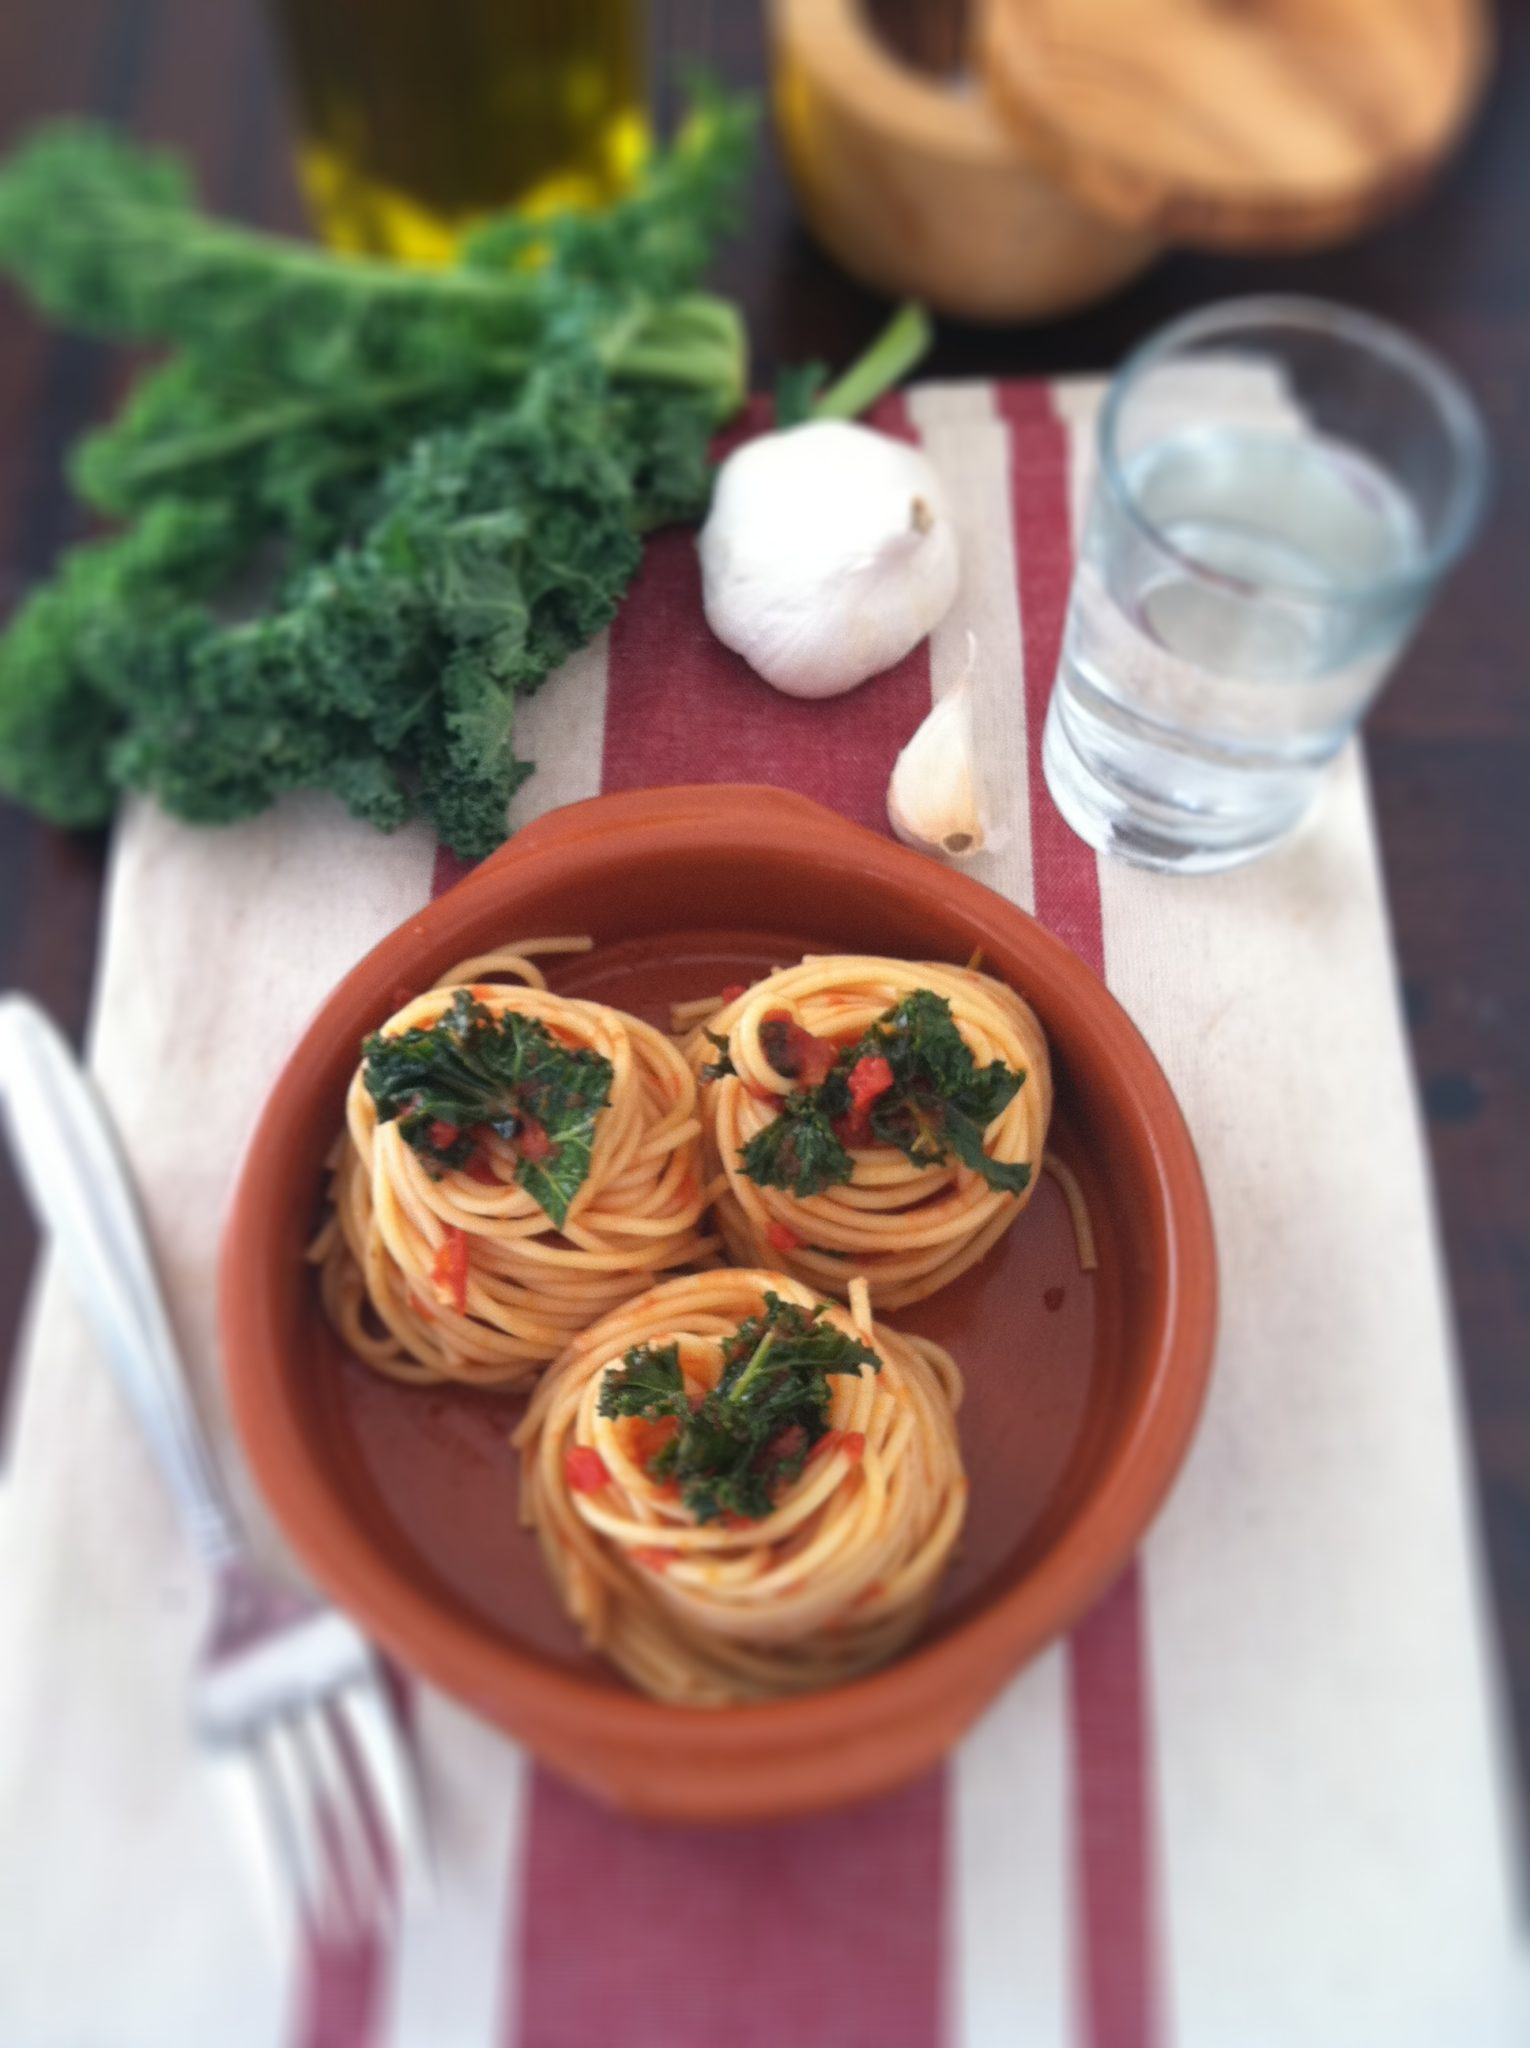 Vegetarian Whole Wheat Pasta With Fried Kale, Tomato Sauce, And Goat ...